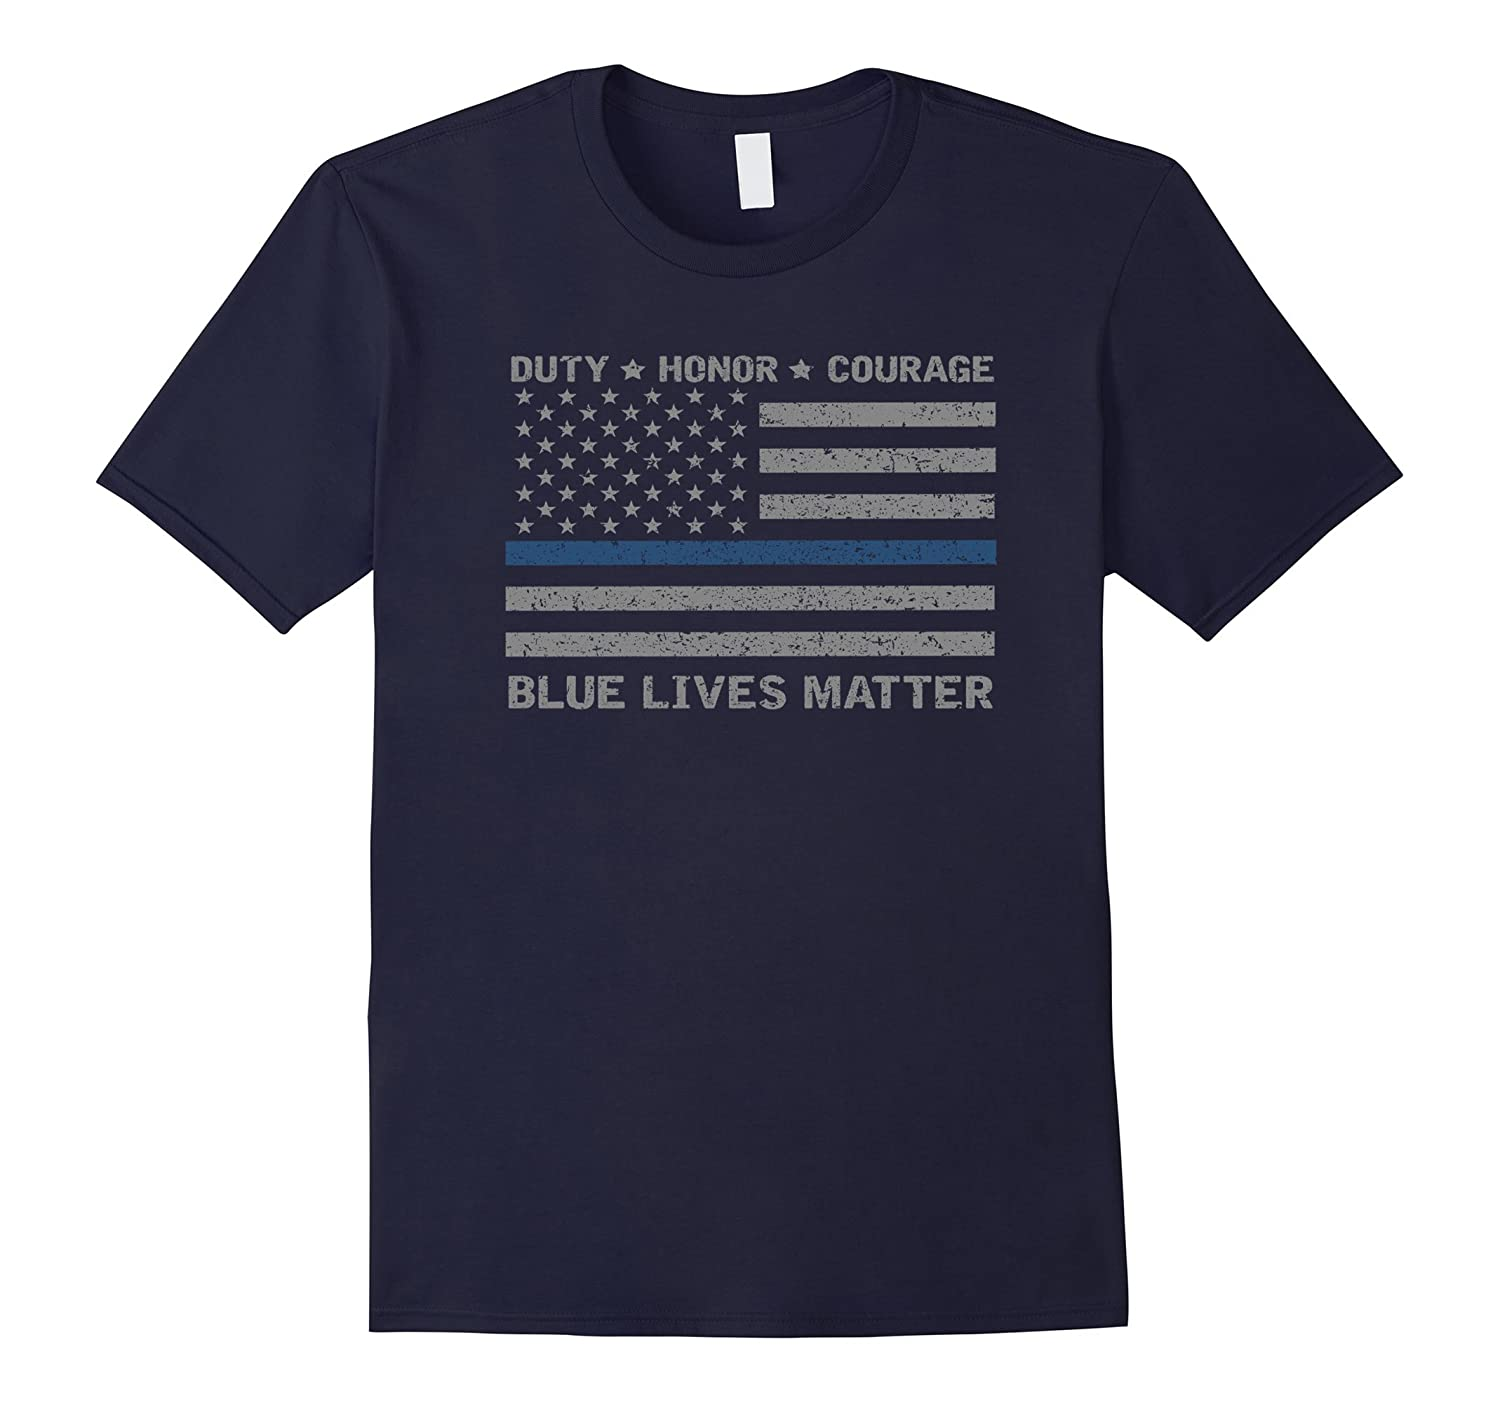 Blue Lives Matter Duty Honor Courage Police Officers T-Shirt-CL